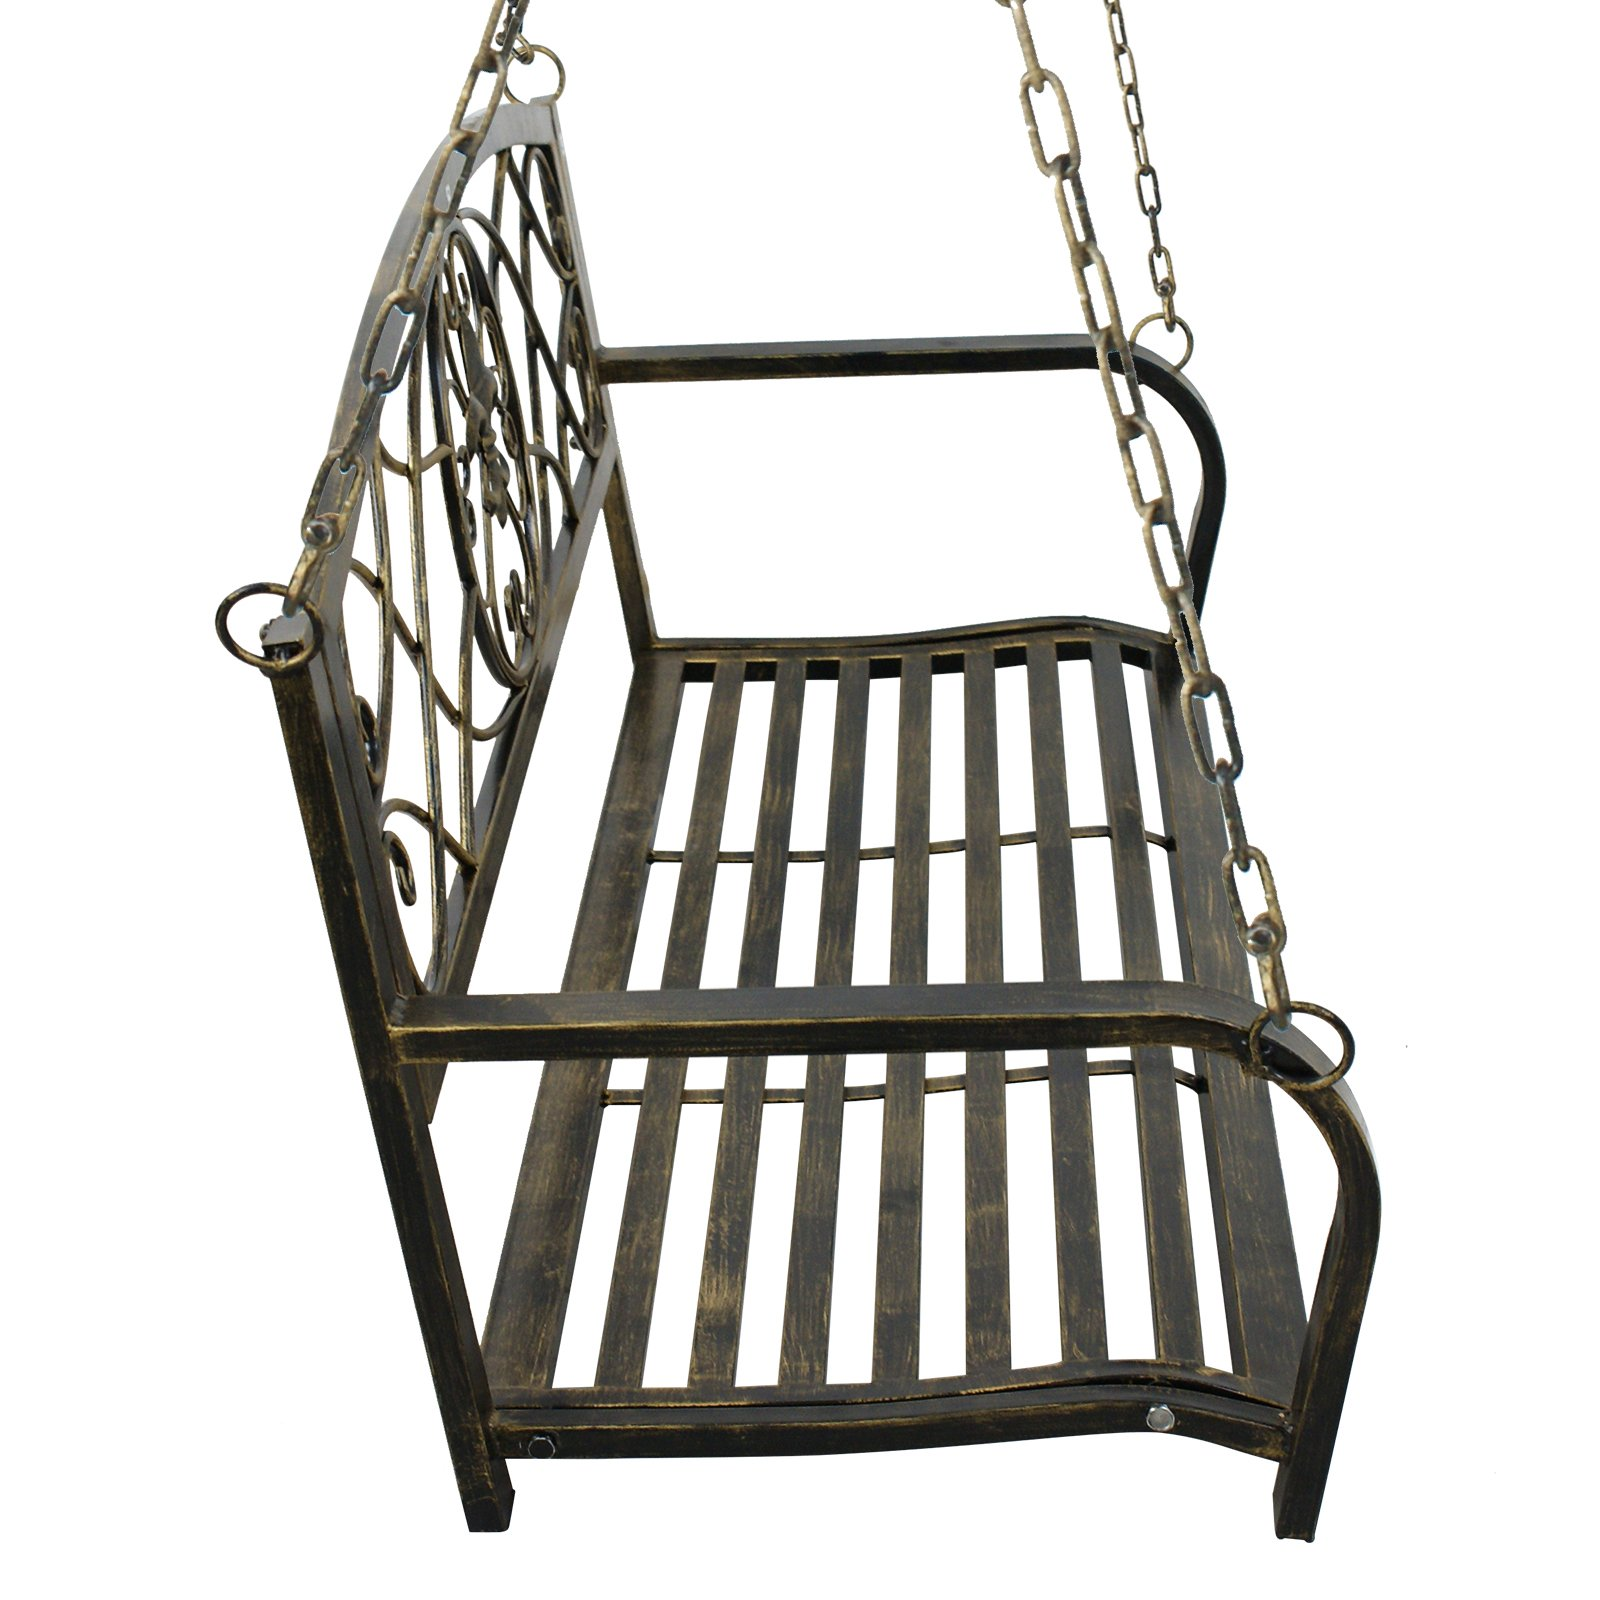 Smartxchoices Treated Metal Hanging Patio Swing Bench Porch Furniture Fleur-De-Lis Design 2 Person Heavy Duty Swing Chair 50.5''L by Smartxchoices (Image #3)